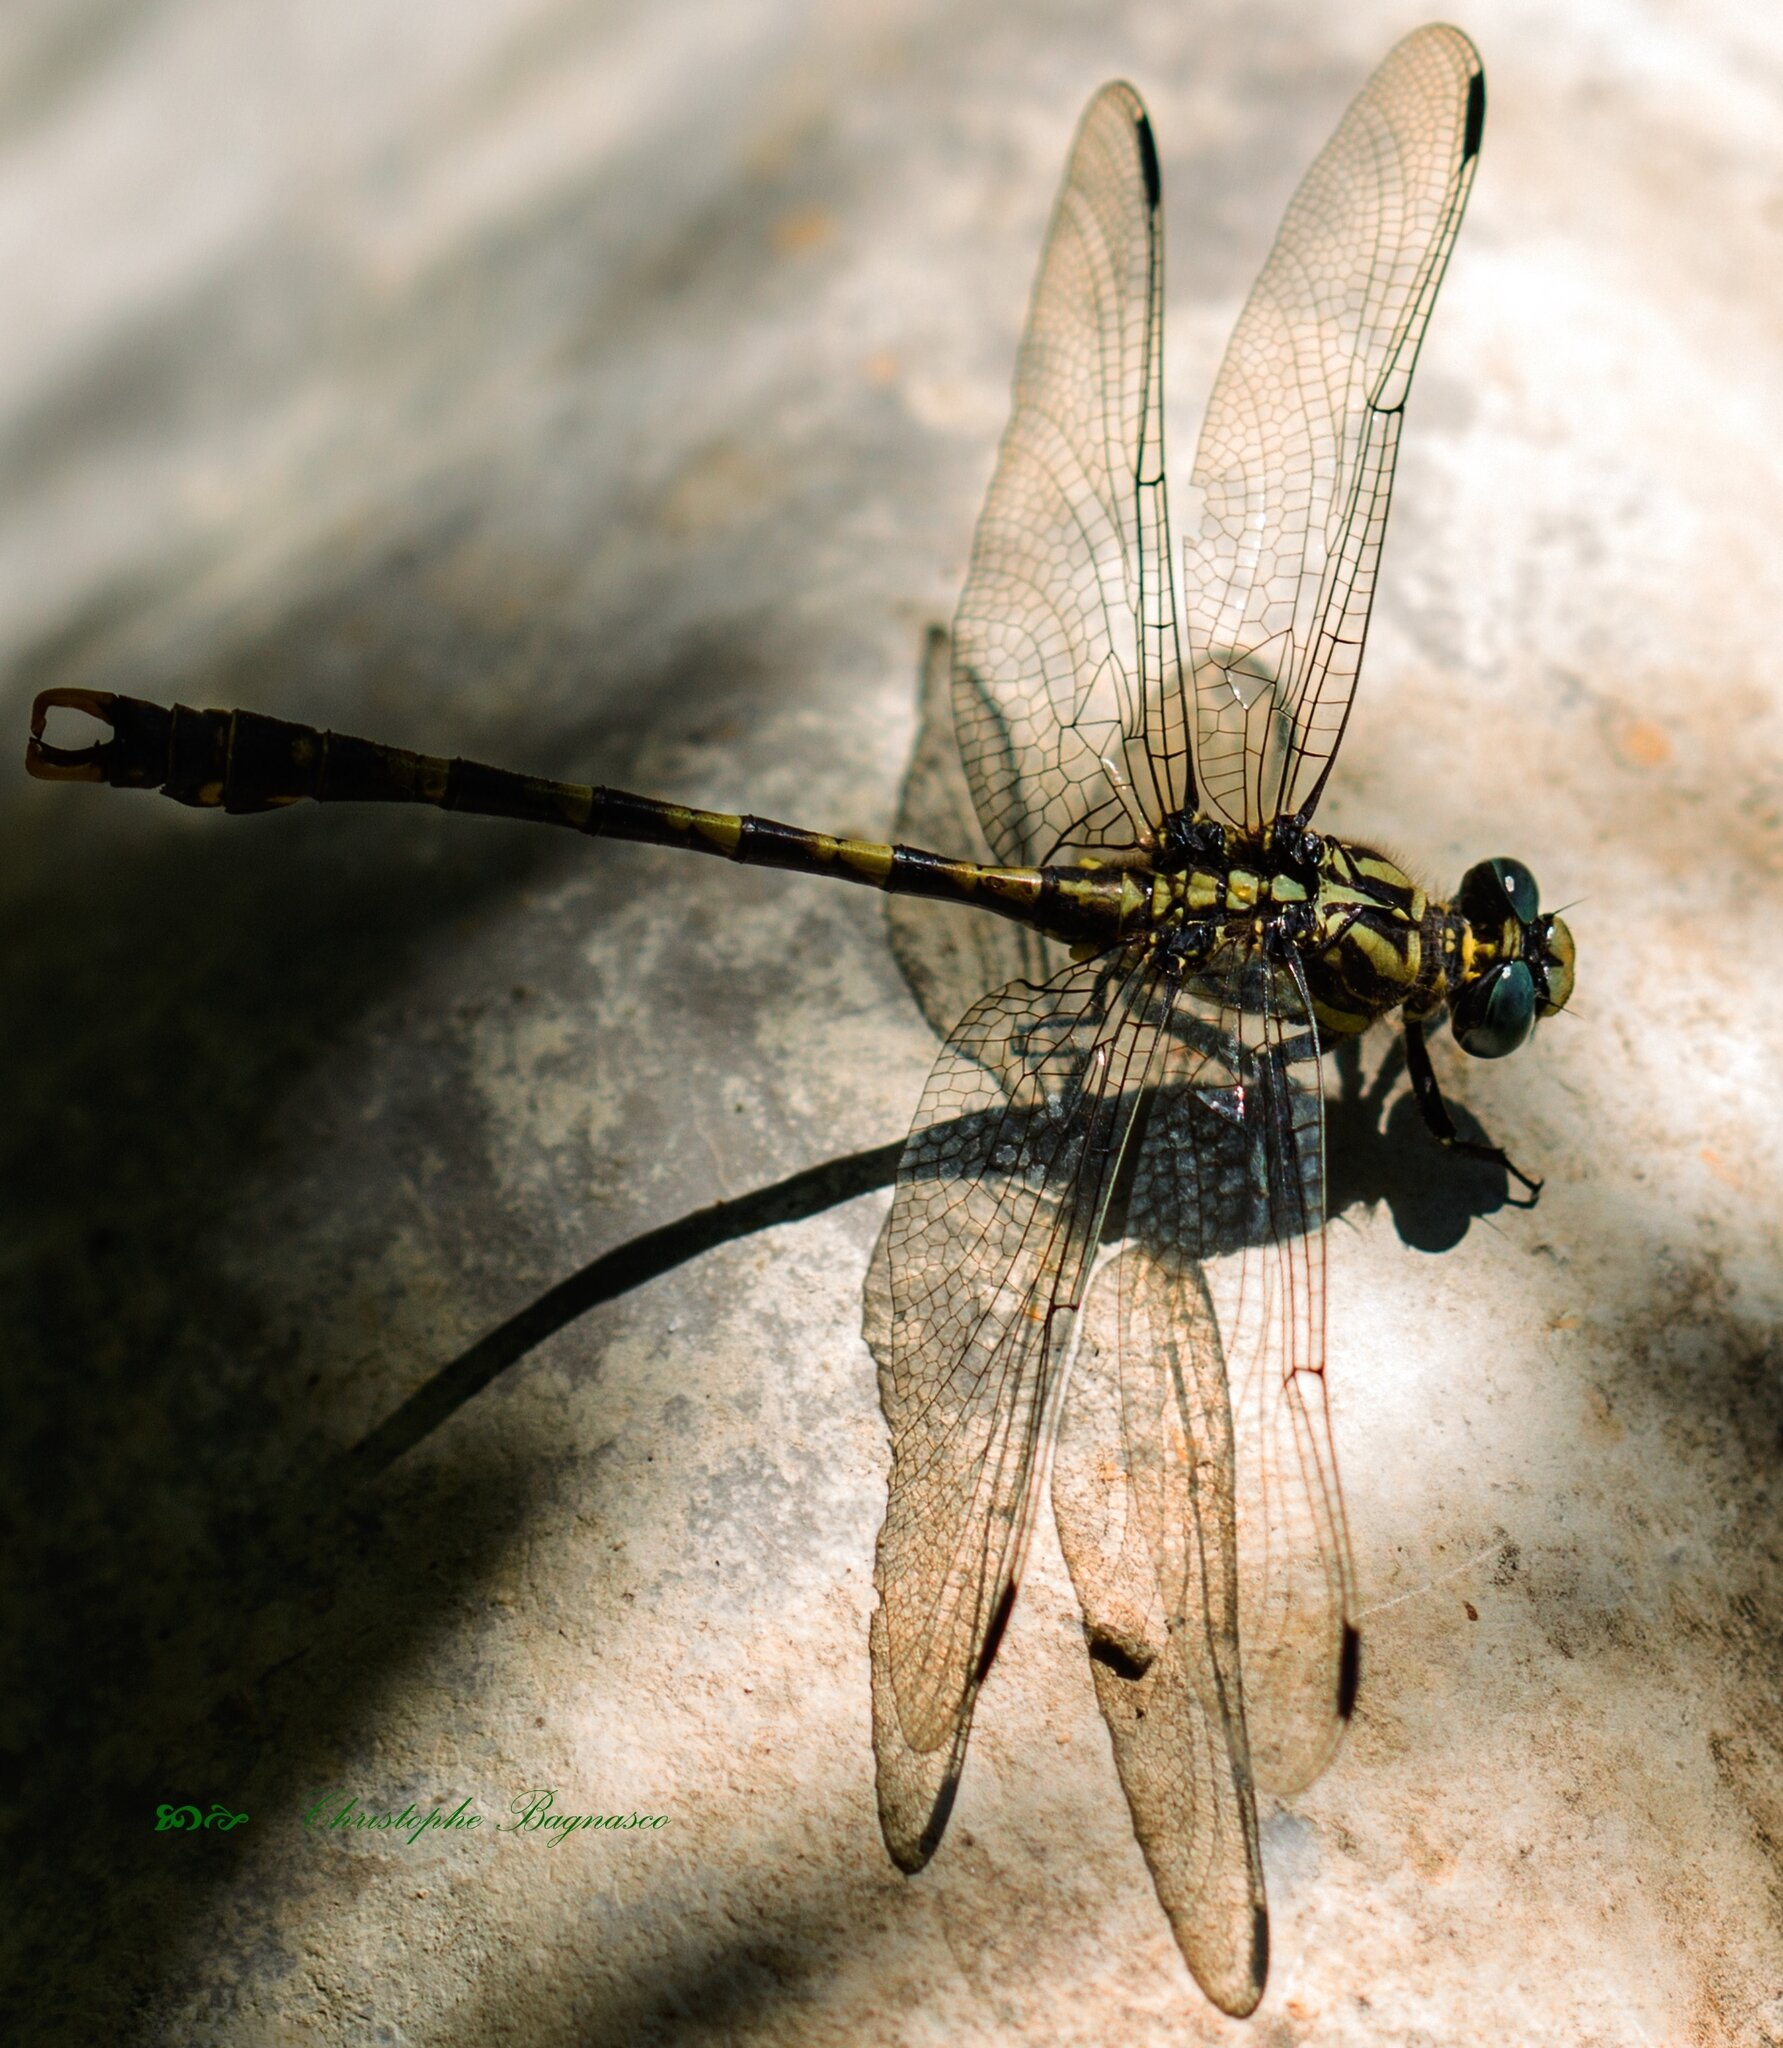 Hélicoptère fossile